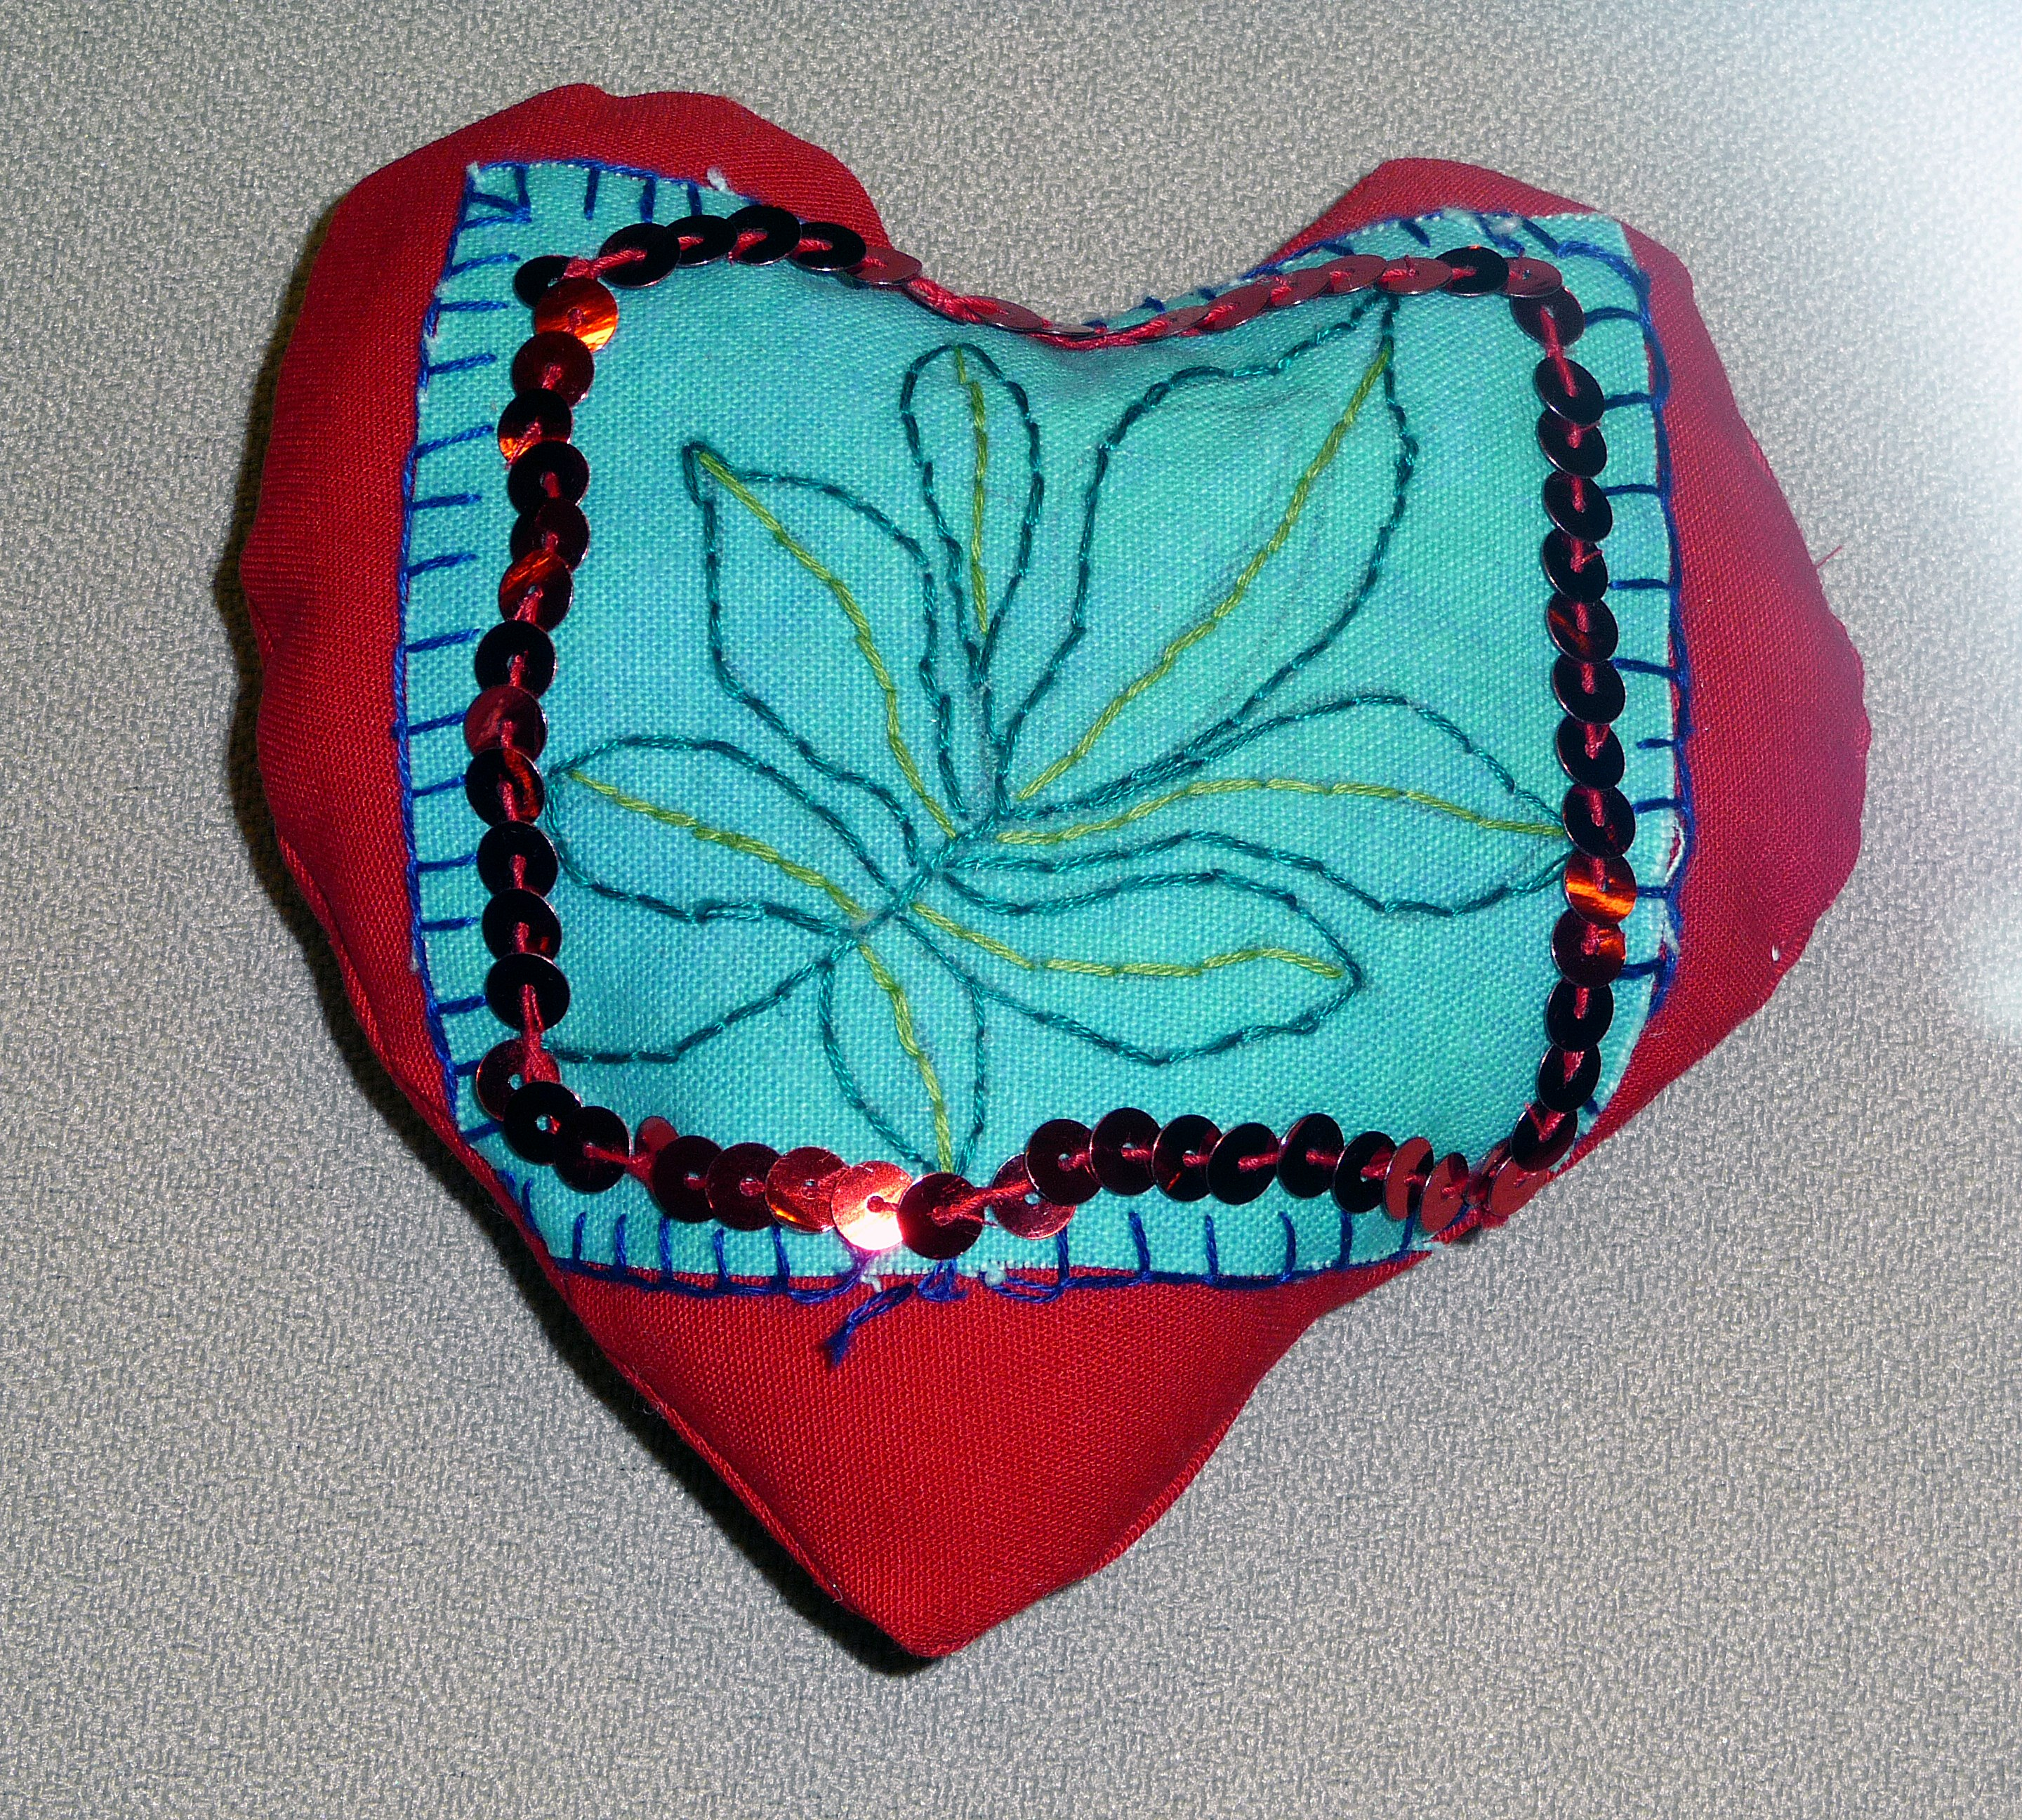 pincushion to commemorate World War 1 made by Ruby, a Merseyside Young Embroiderer